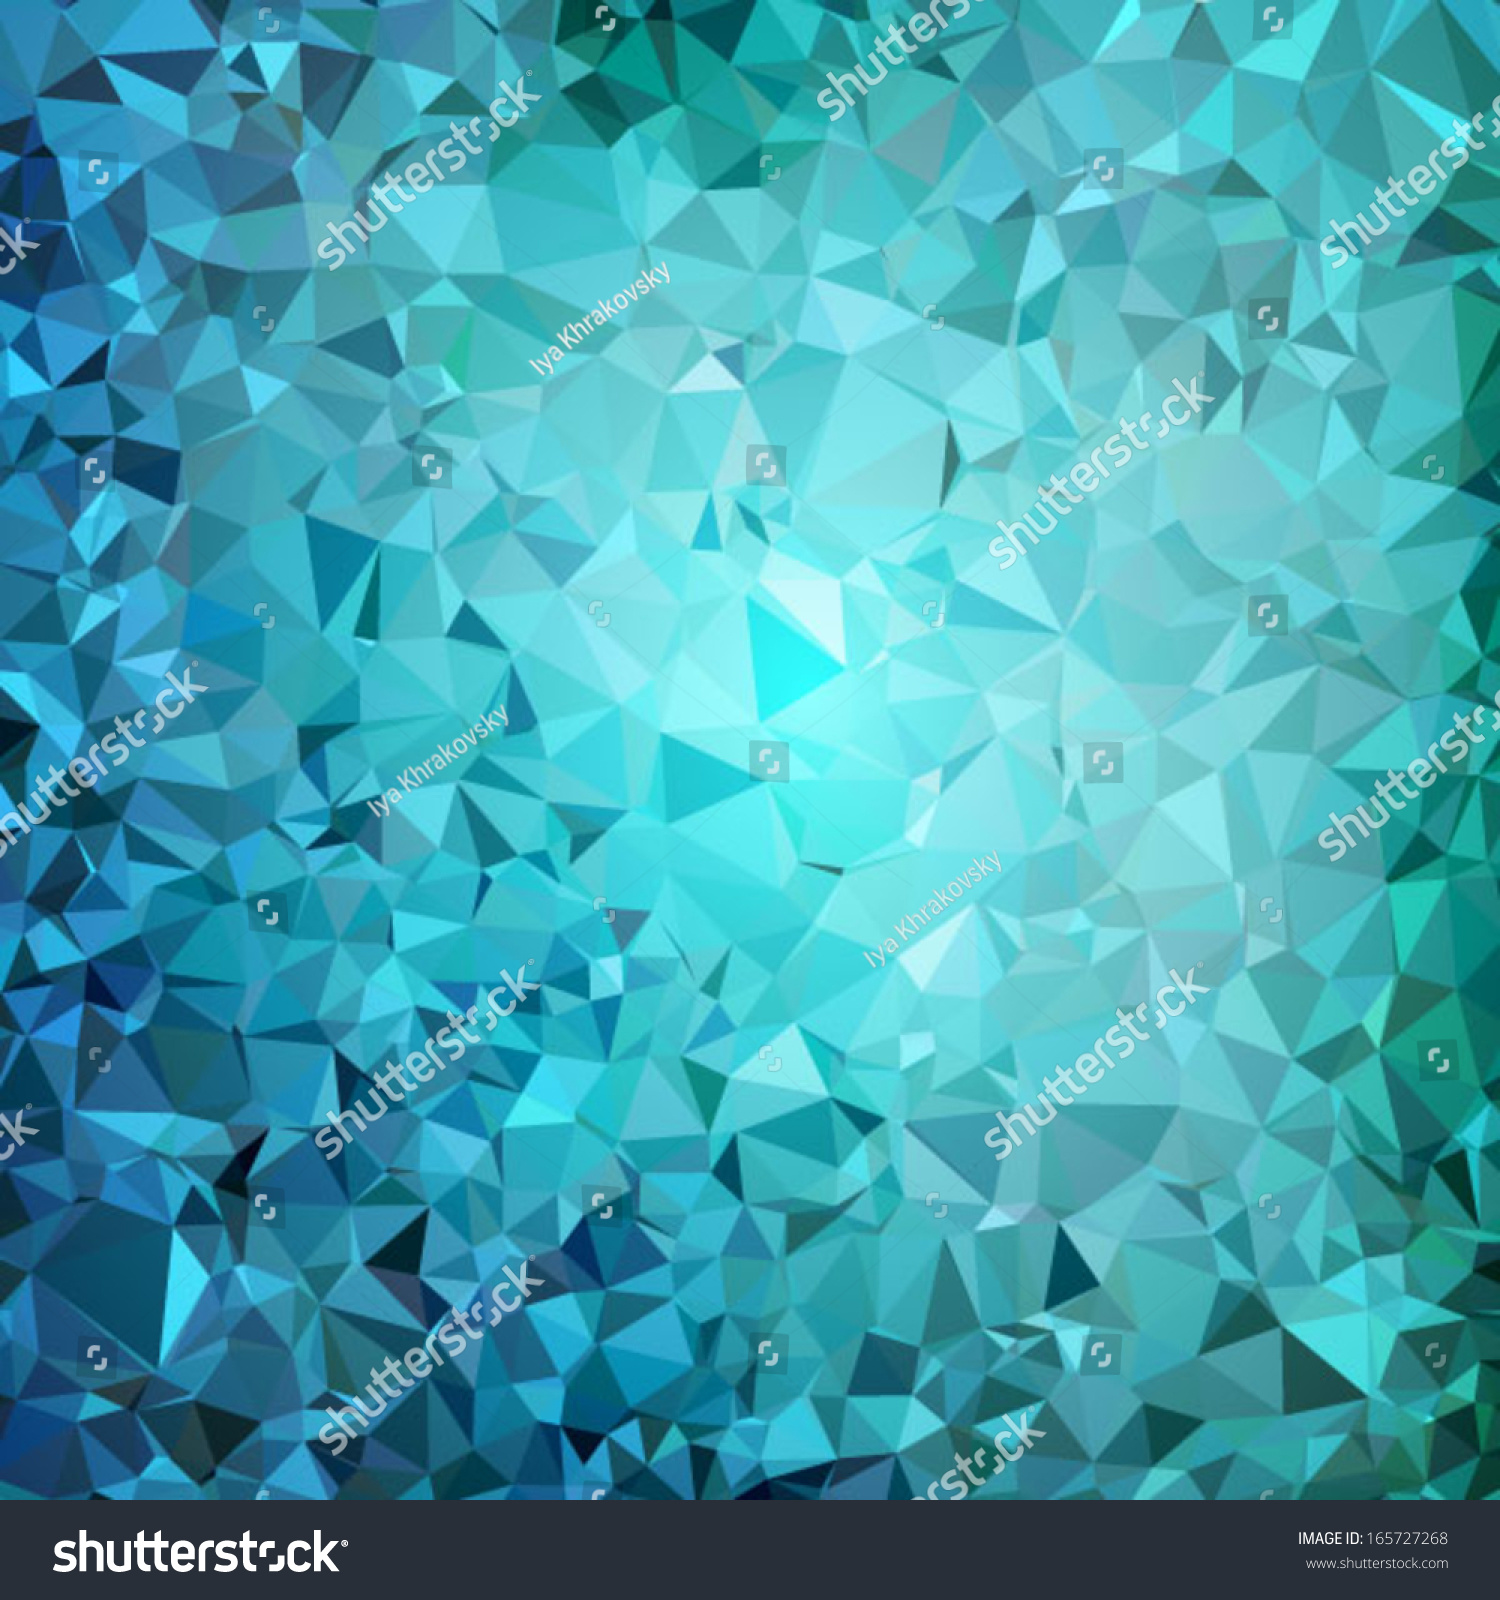 Turquoise Background Geometric Abstract Glowing Vector